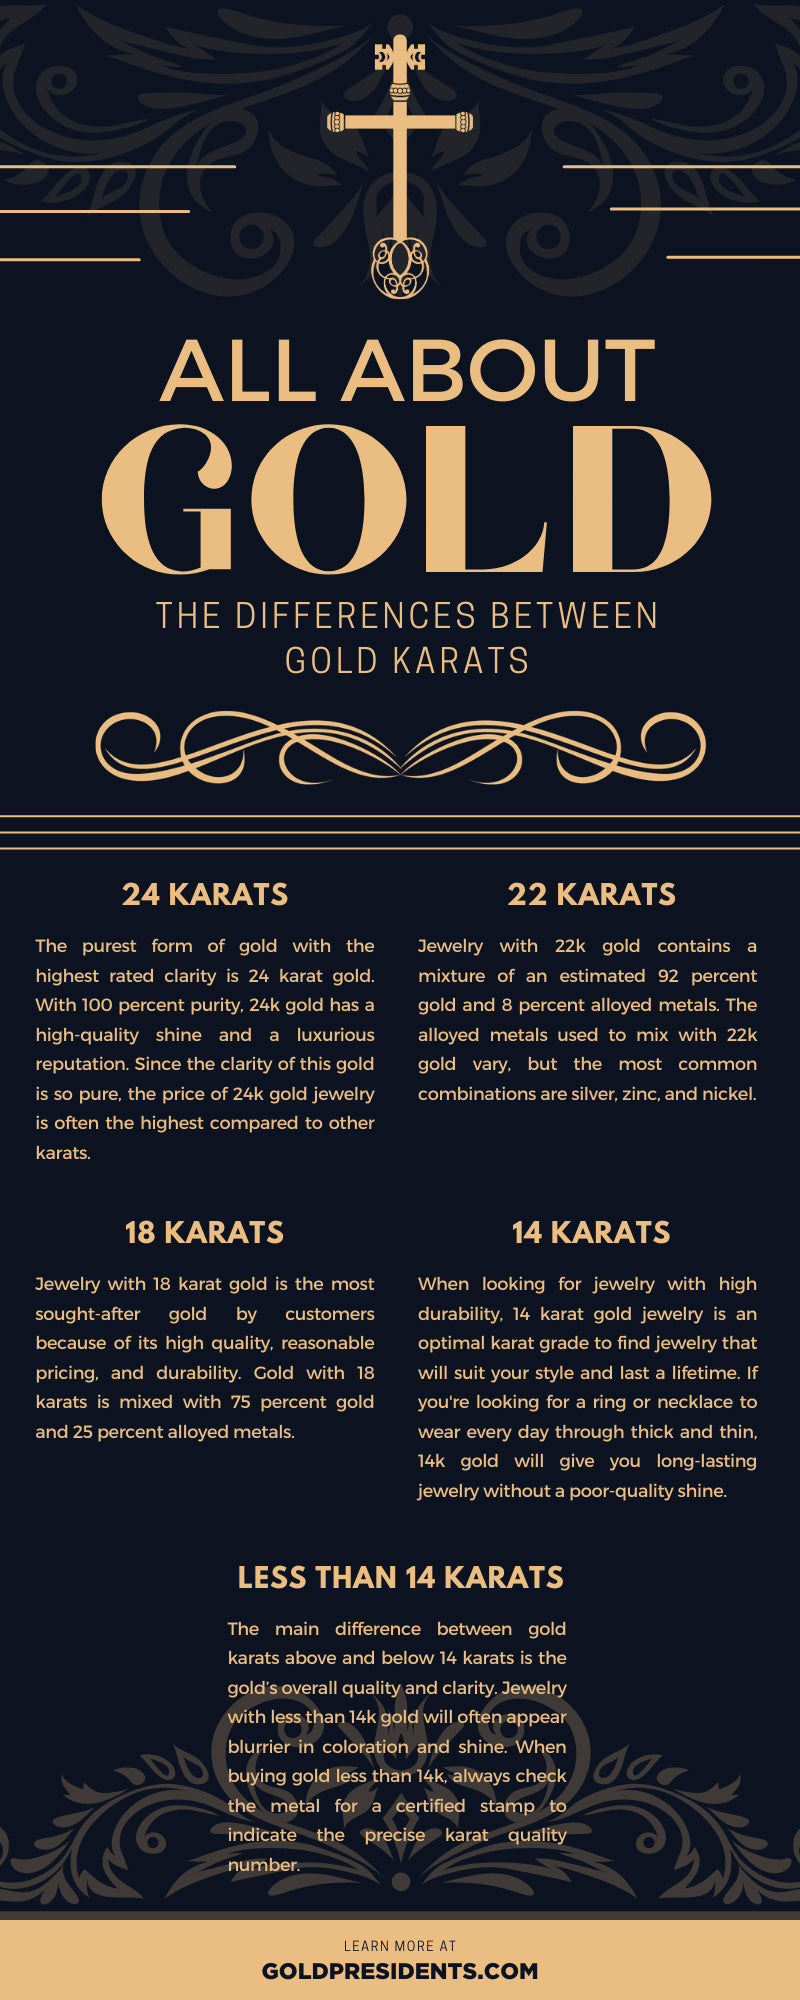 All About Gold: The Differences Between Gold Karats